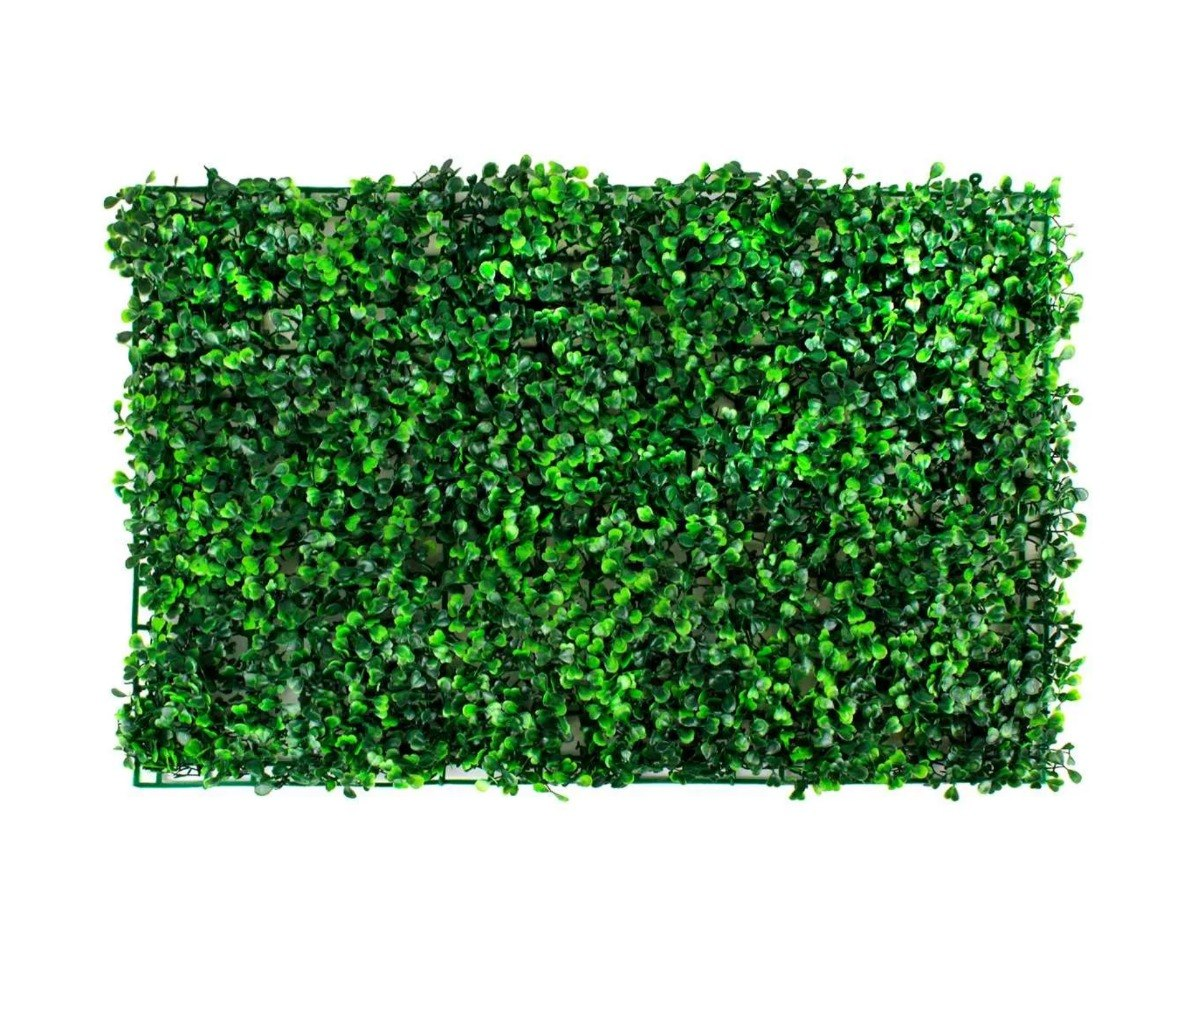 Follaje artificial muro verde jardin plantas 60x40 past01 for Plantas jardin vertical